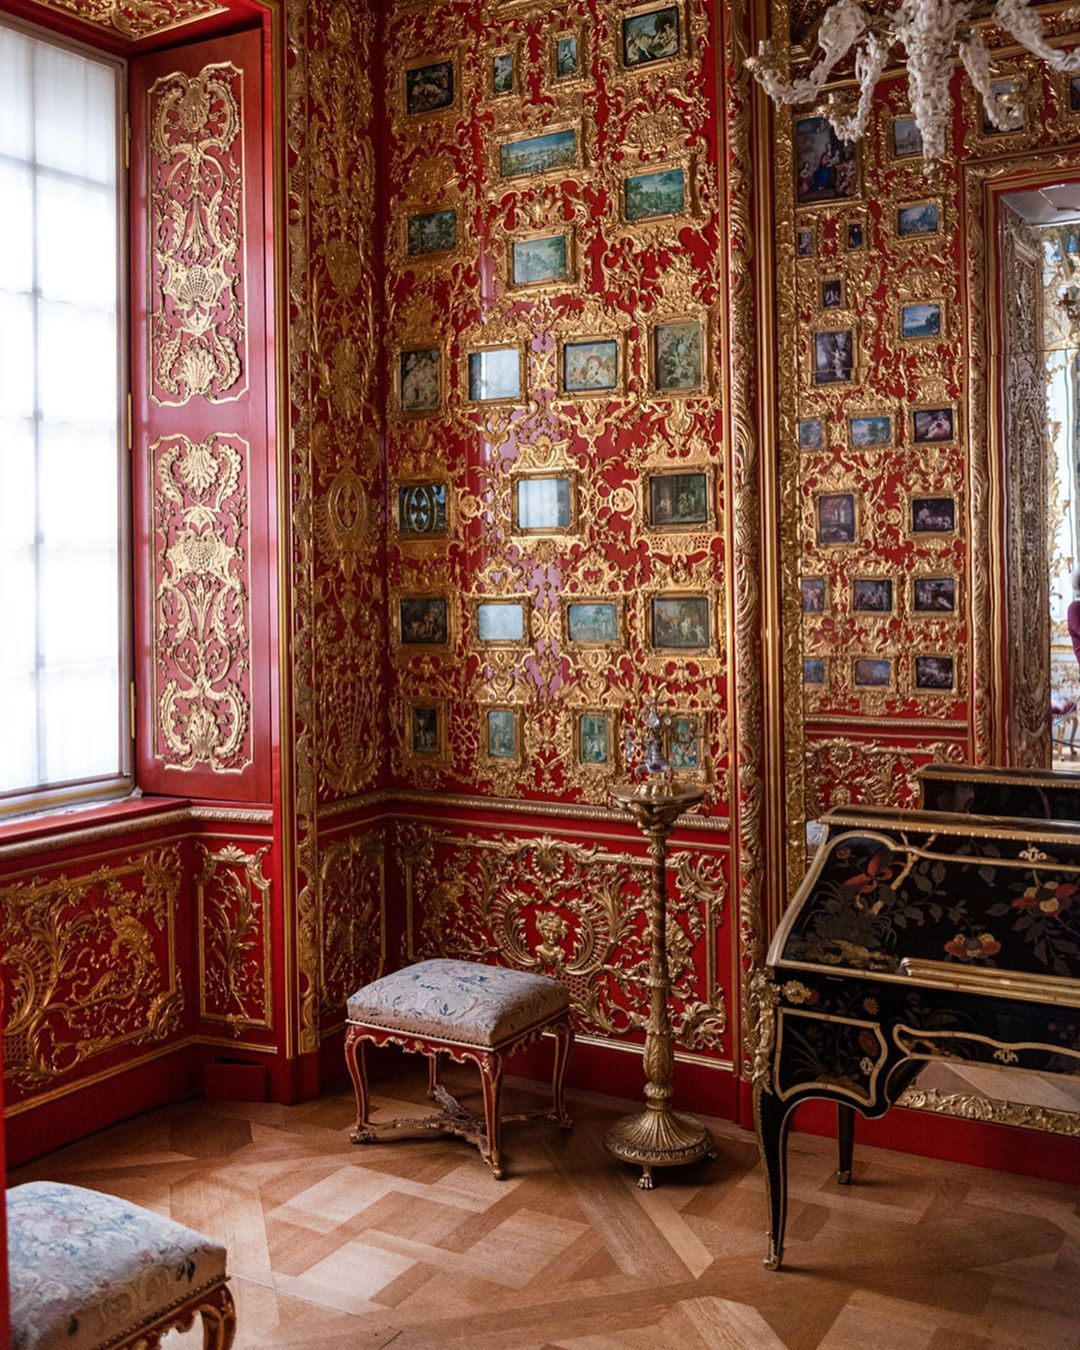 The Vogel Miniatures Cabinet In The Munich Residenz The Former Royal Palace Of The Wittelsbach Monarchs Of Bavaria Historical Interior Rococo Style Munich